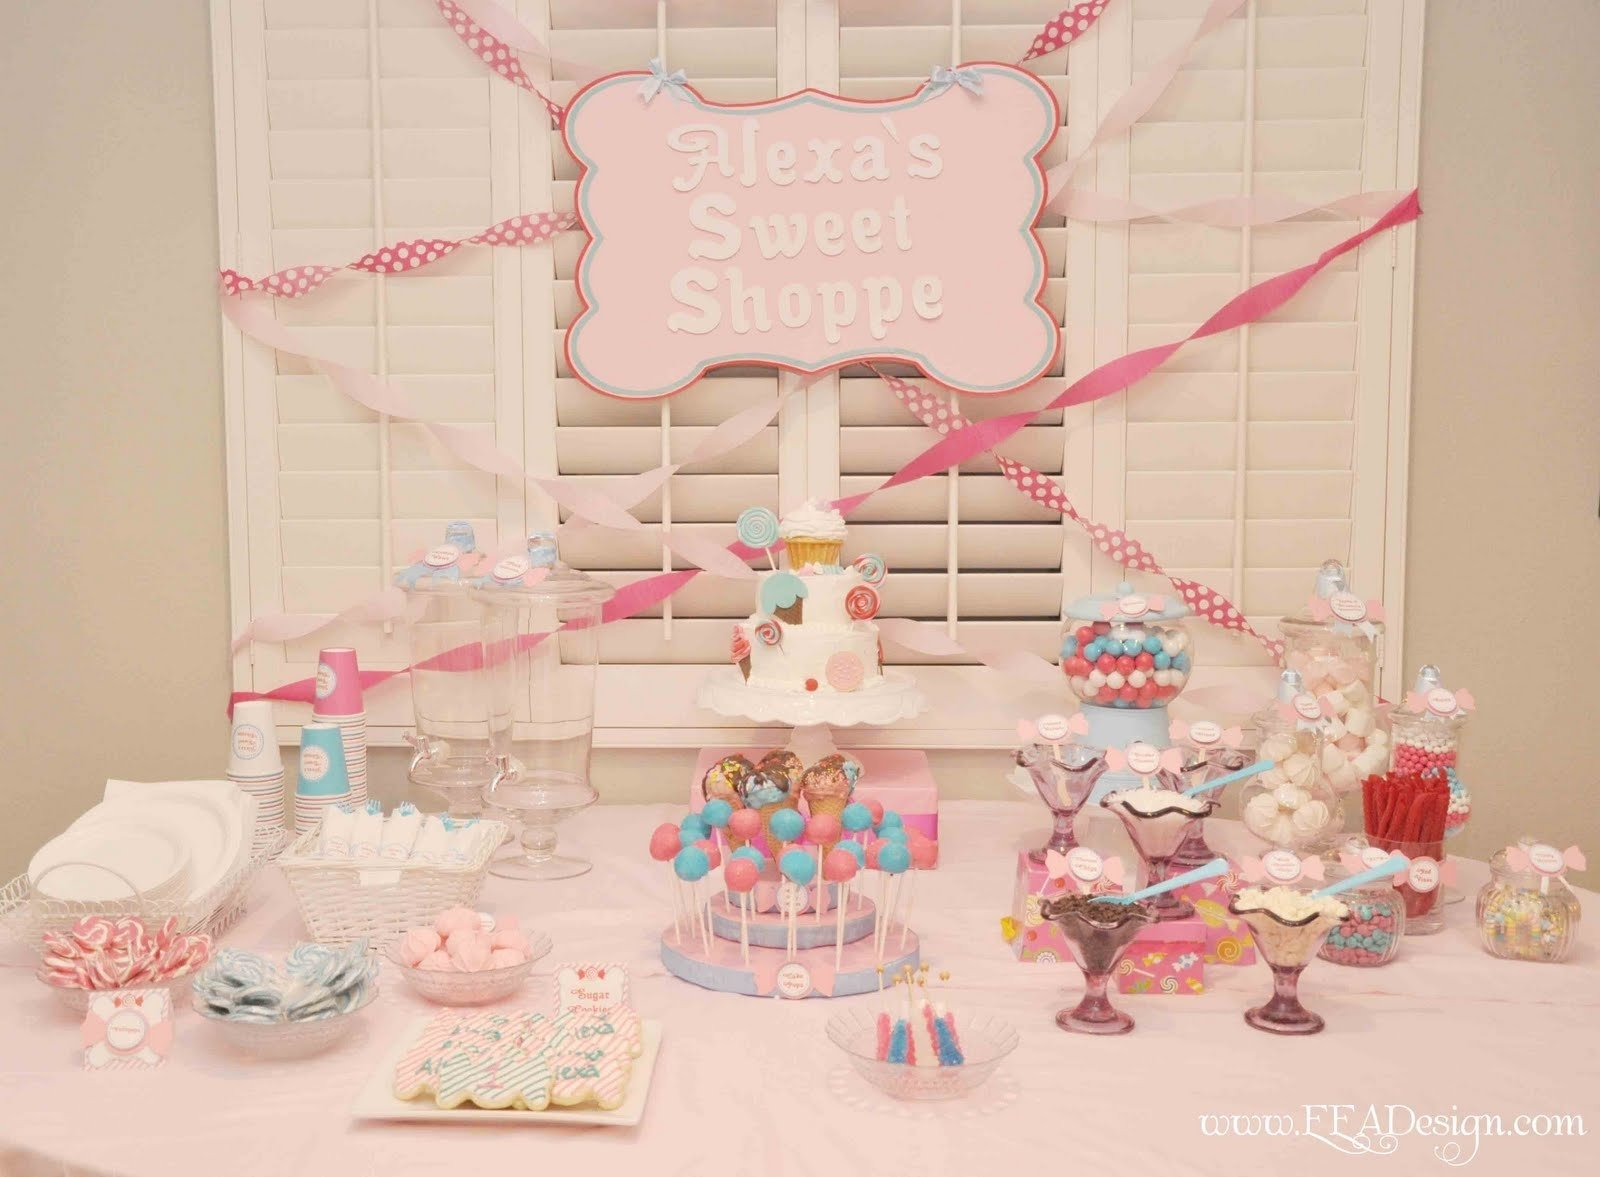 10 Most Recommended 16 Birthday Party Ideas For Girls 50 birthday party themes for girls i heart nap time 29 2021